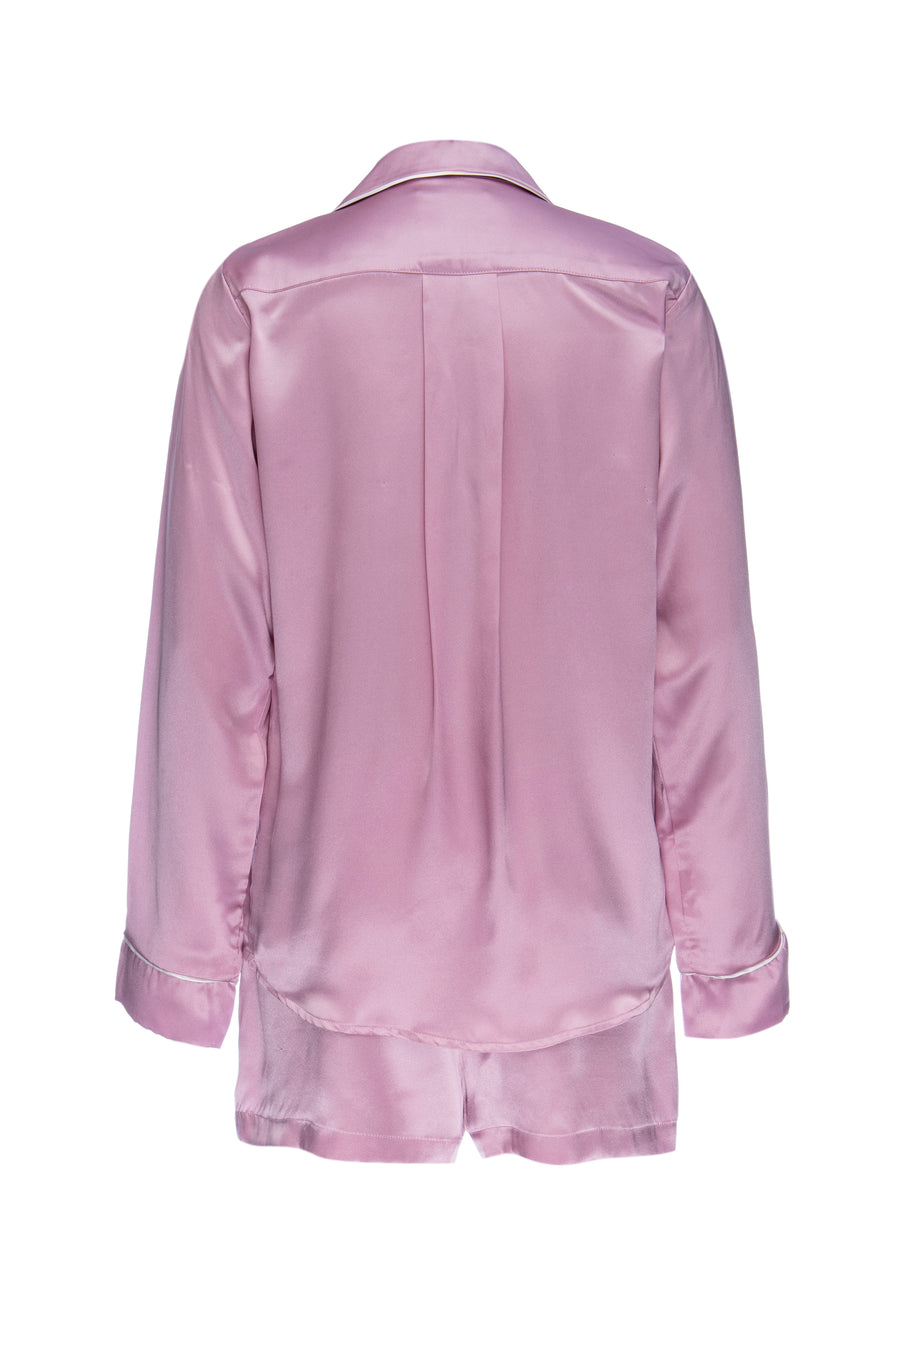 Silk Charmeuse Long Sleeved Top: Orchid Pink